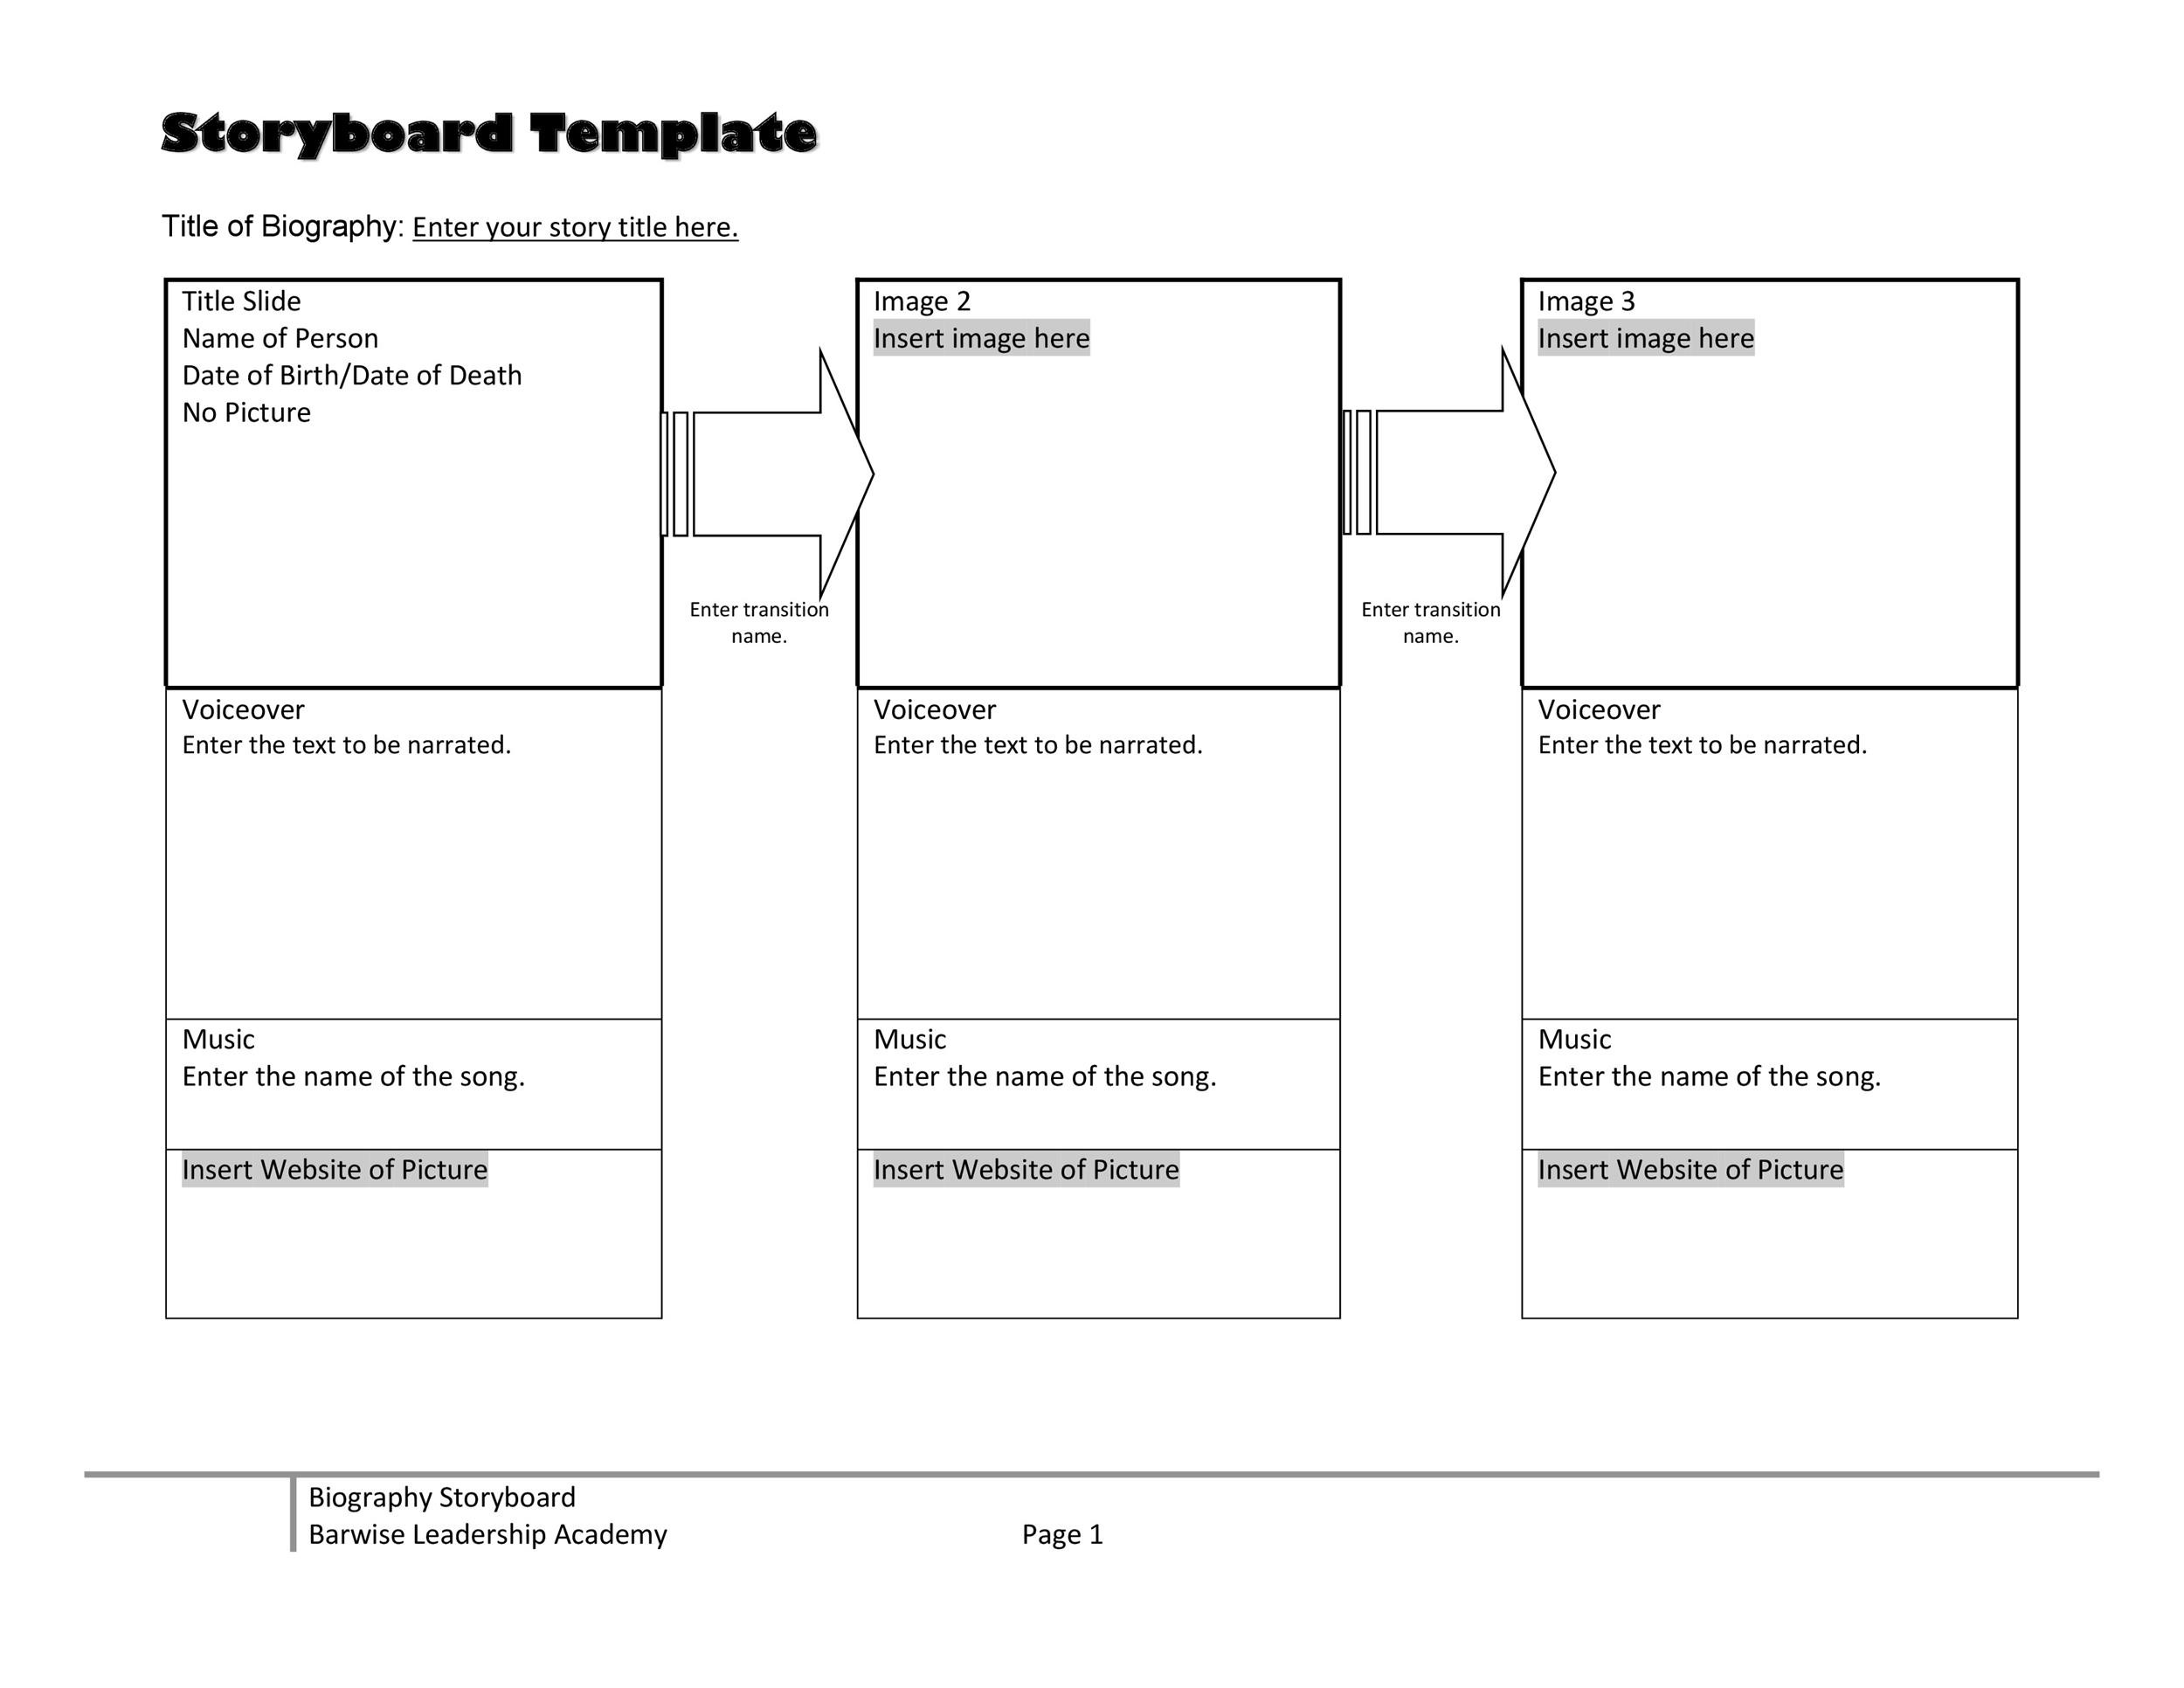 40 Professional Storyboard Templates \ Examples - website storyboard